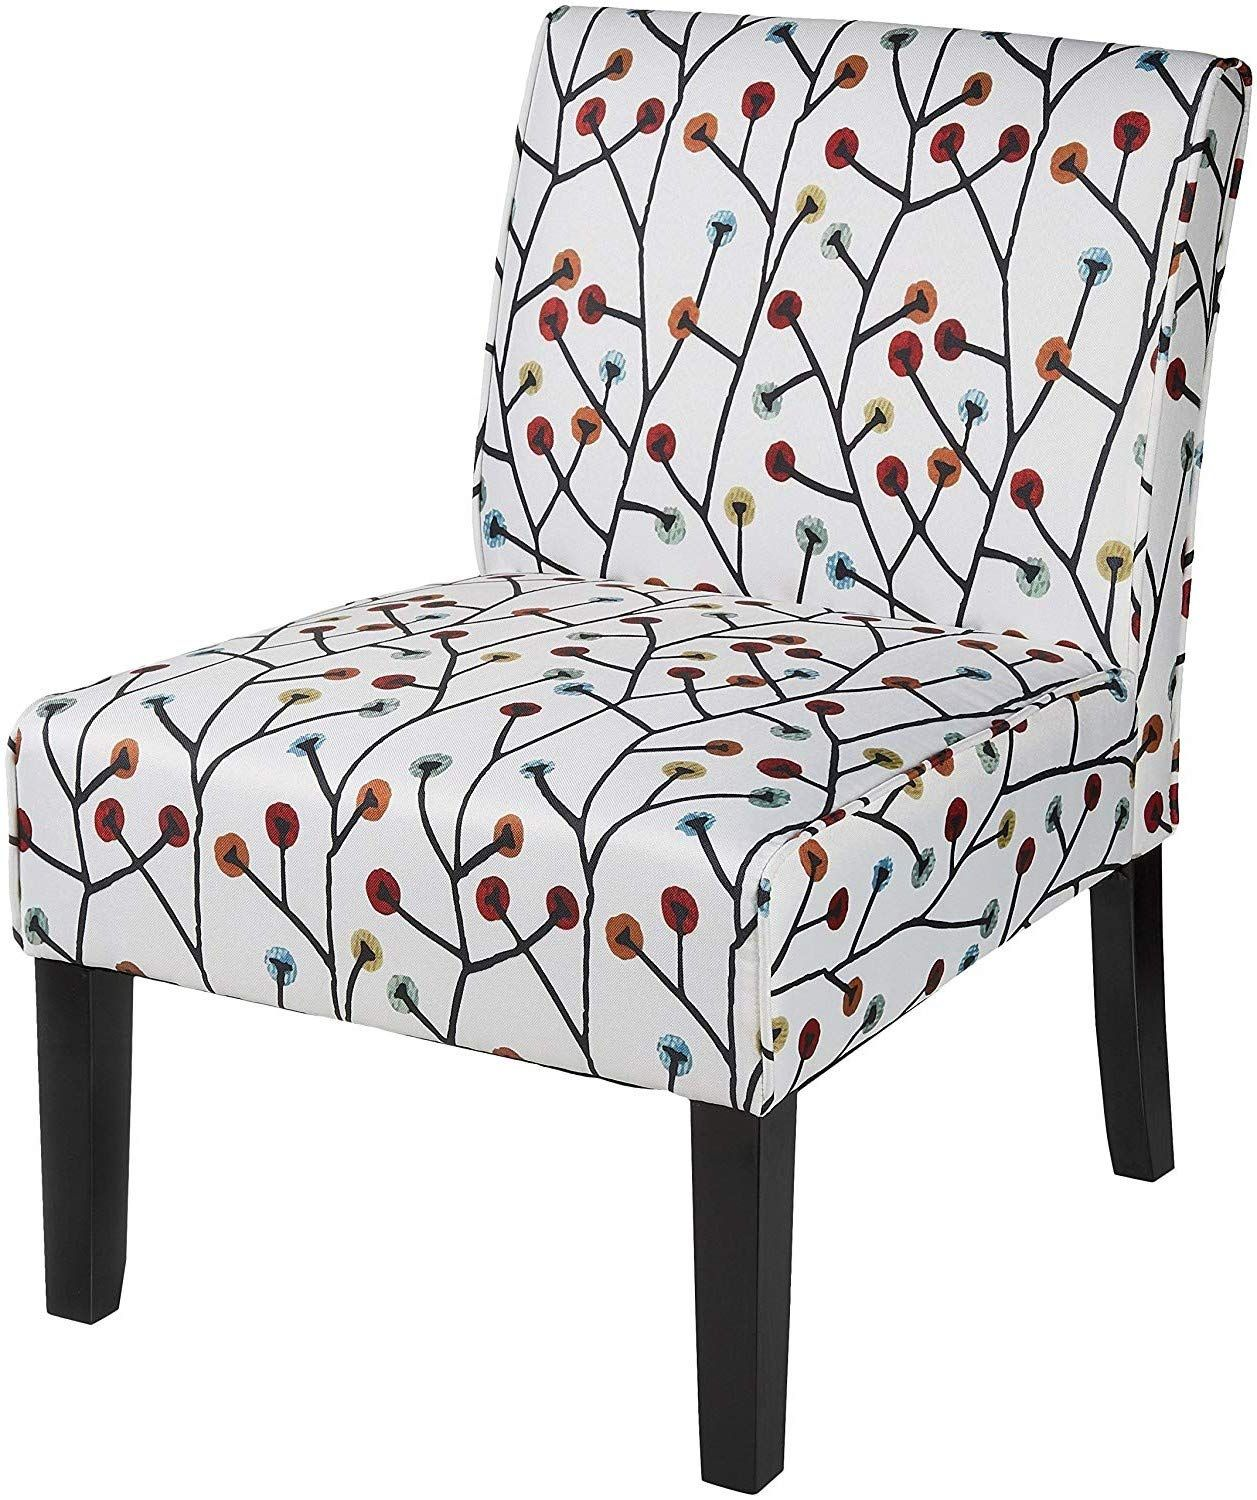 Armless lounge chair white floral design accent chair seat